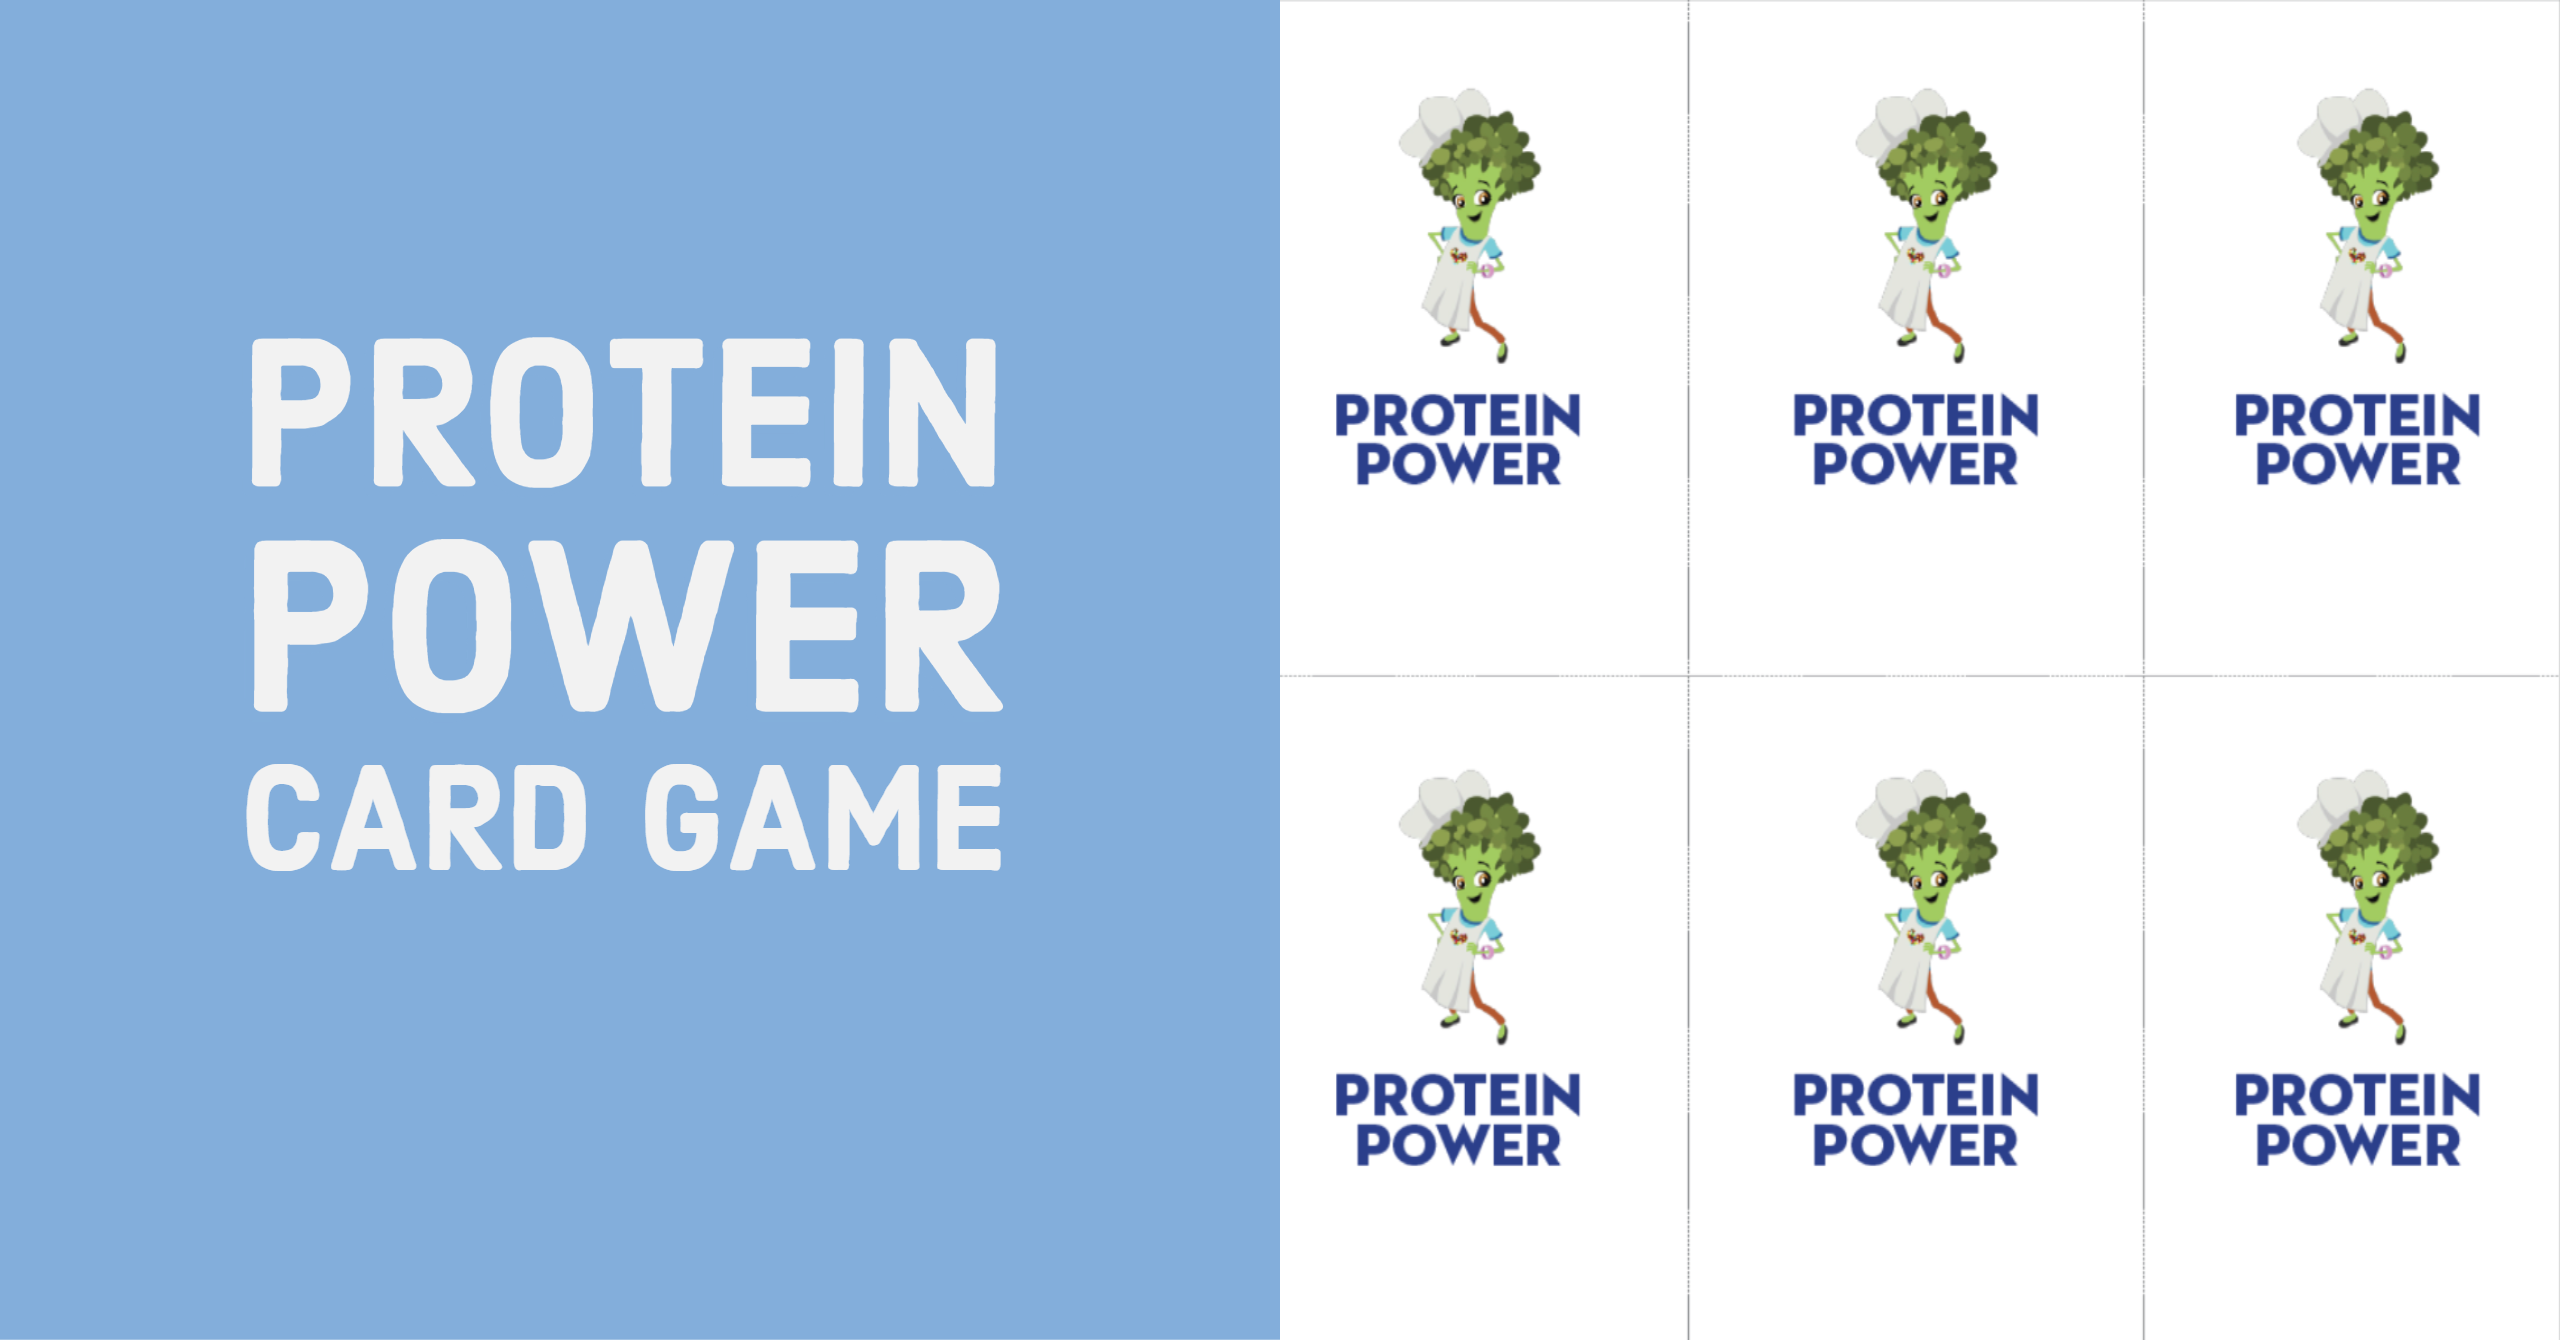 Materials: Protein Power Game